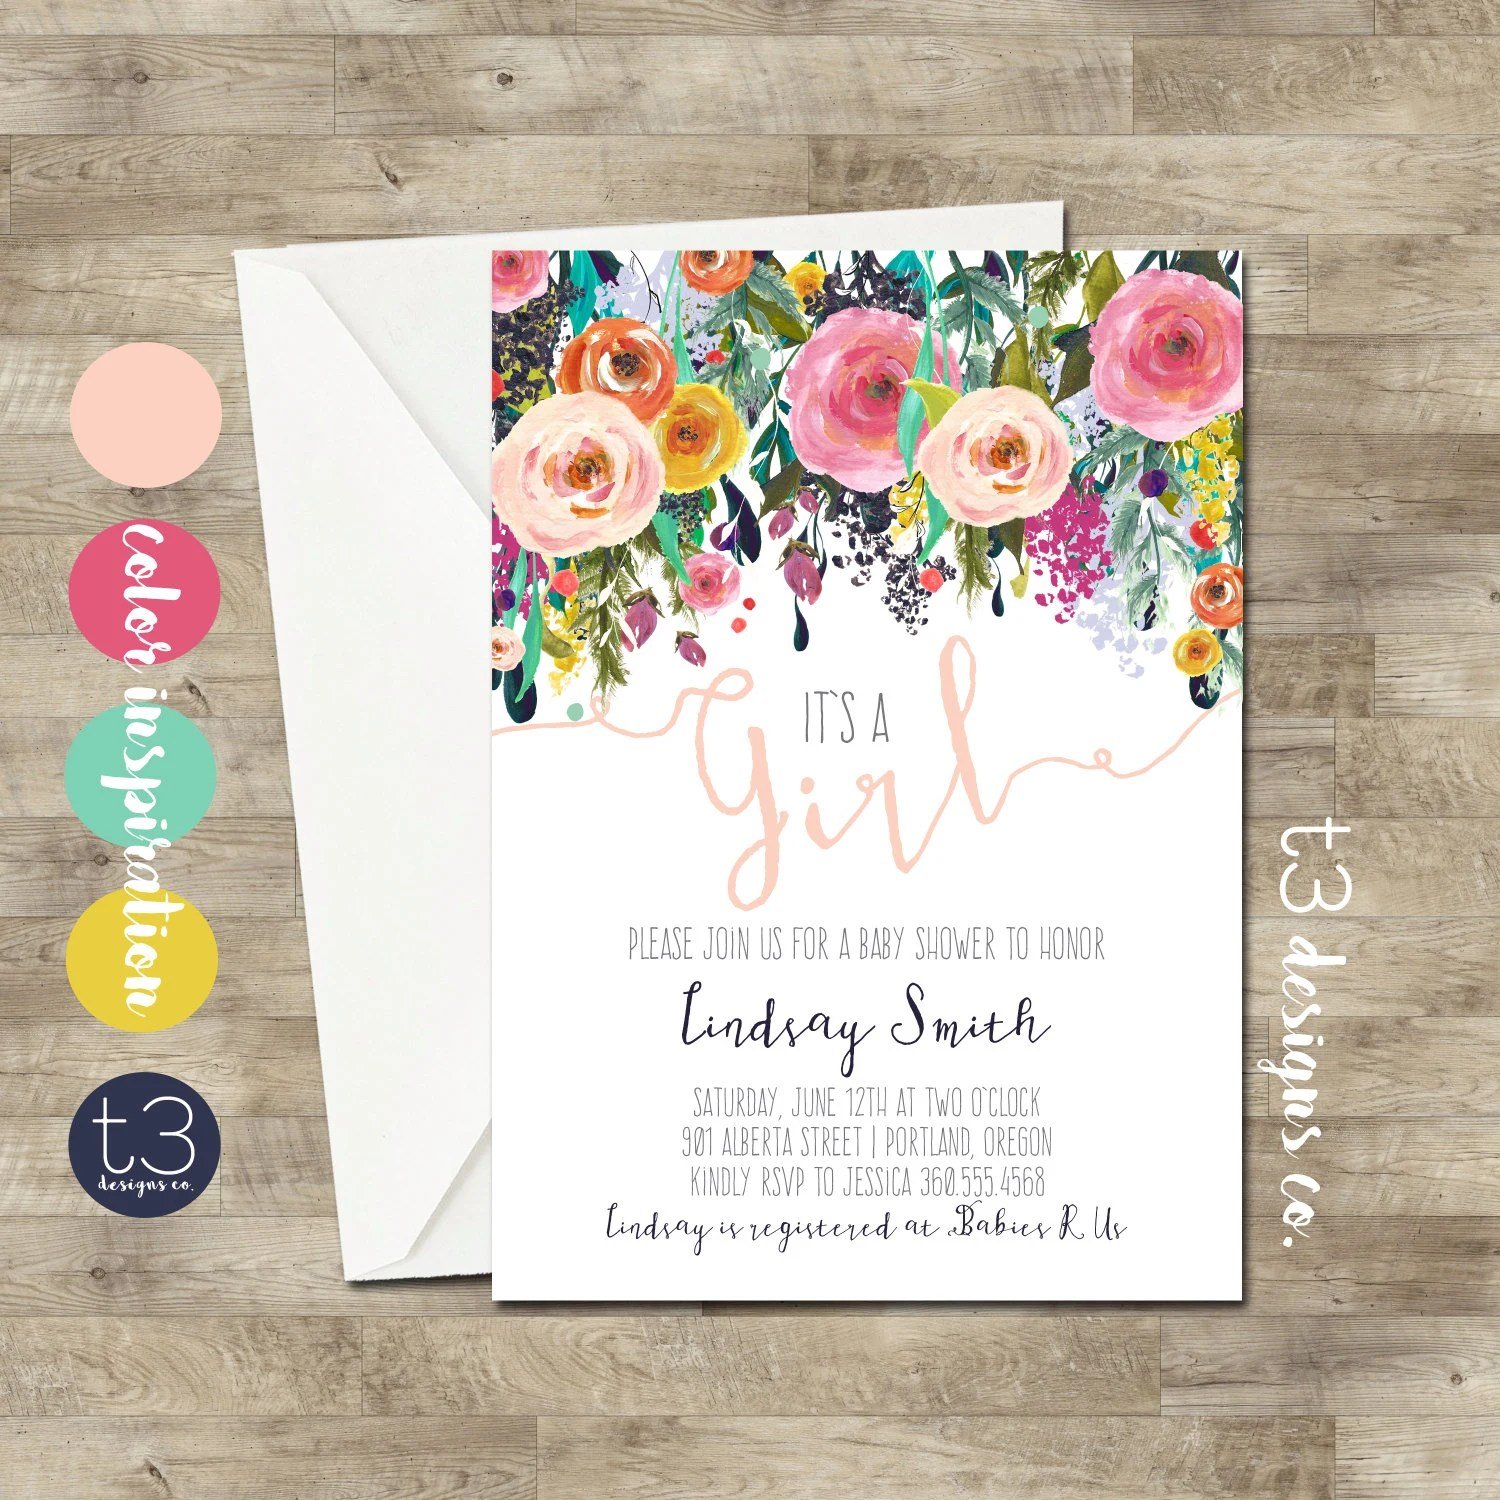 Amusing Watercolor Baby Shower Floral Baby Baby Girl Girl Watercolor Blush Pink Watercolor Baby Shower Floral Baby Baby Girl Baby Shower Invitations Girl Amazon Baby Shower Invitations Girl Flowers baby shower Baby Shower Invitations Girl